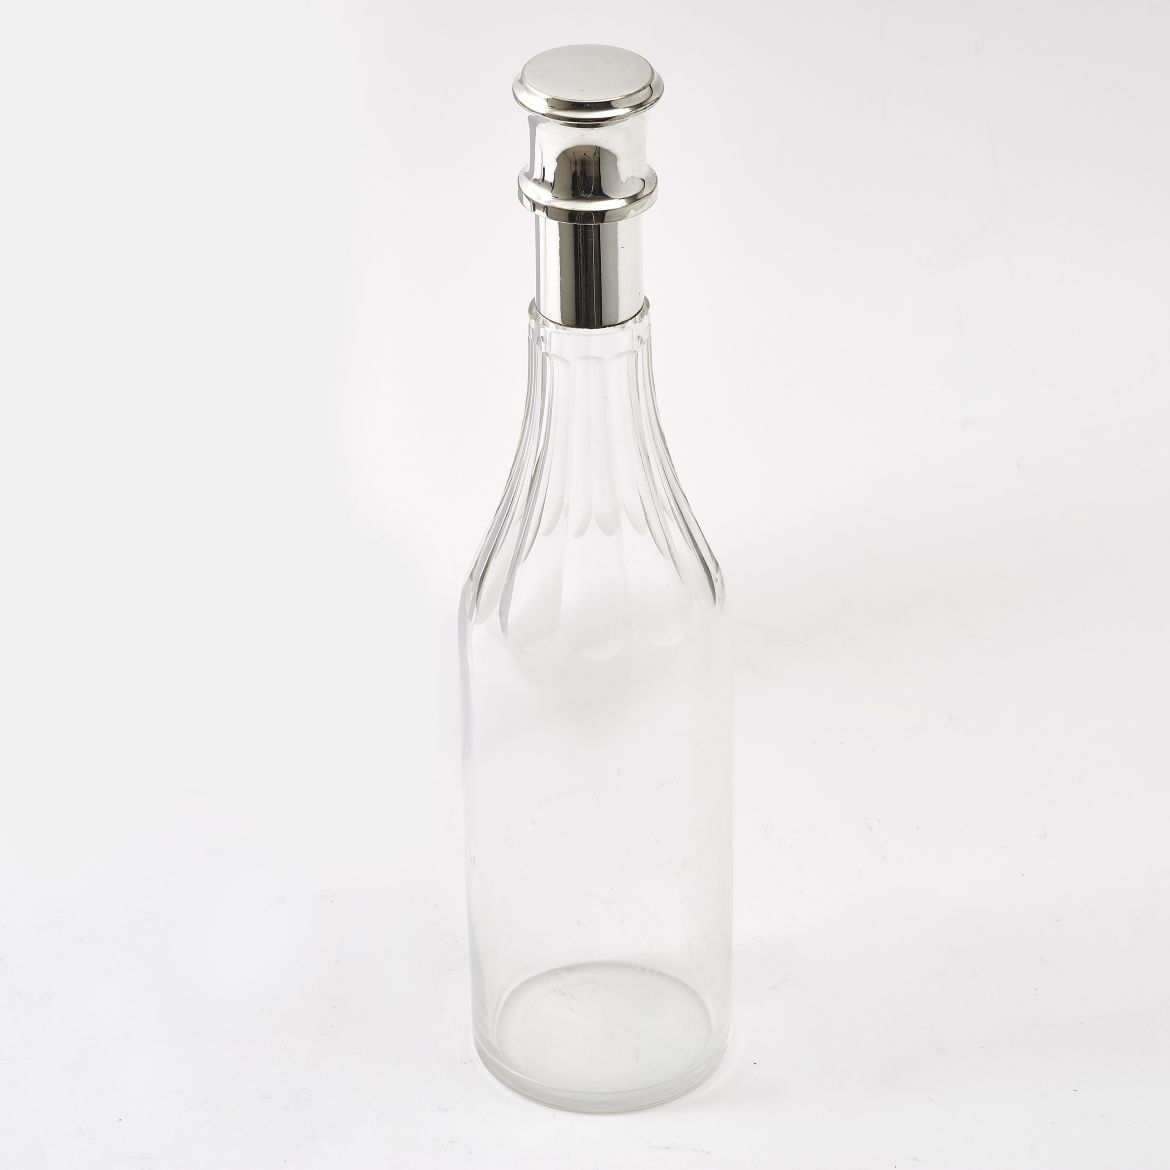 Faceted Glass Bottle Decanter